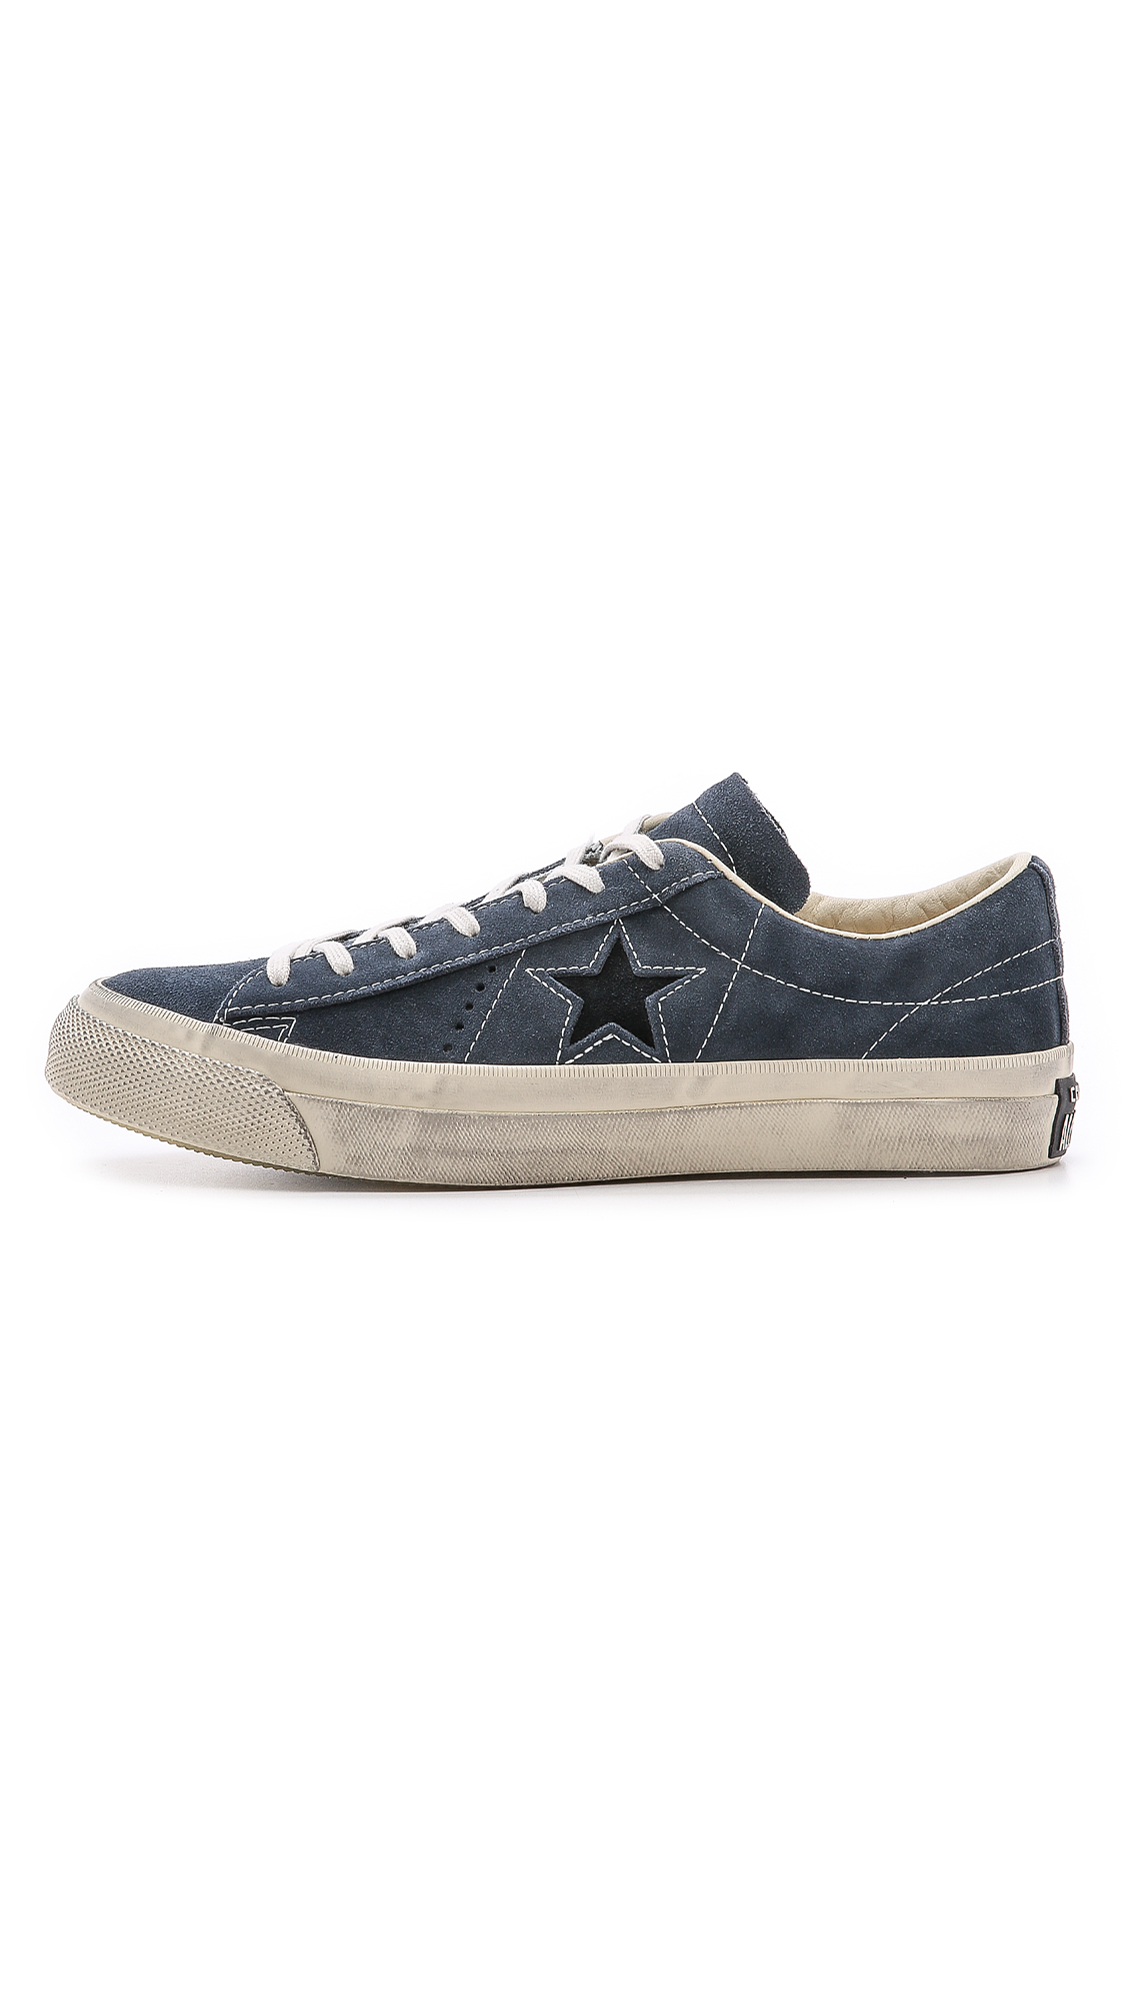 d7968dddddf7 Converse One Star Sneakers in Blue for Men Lyst